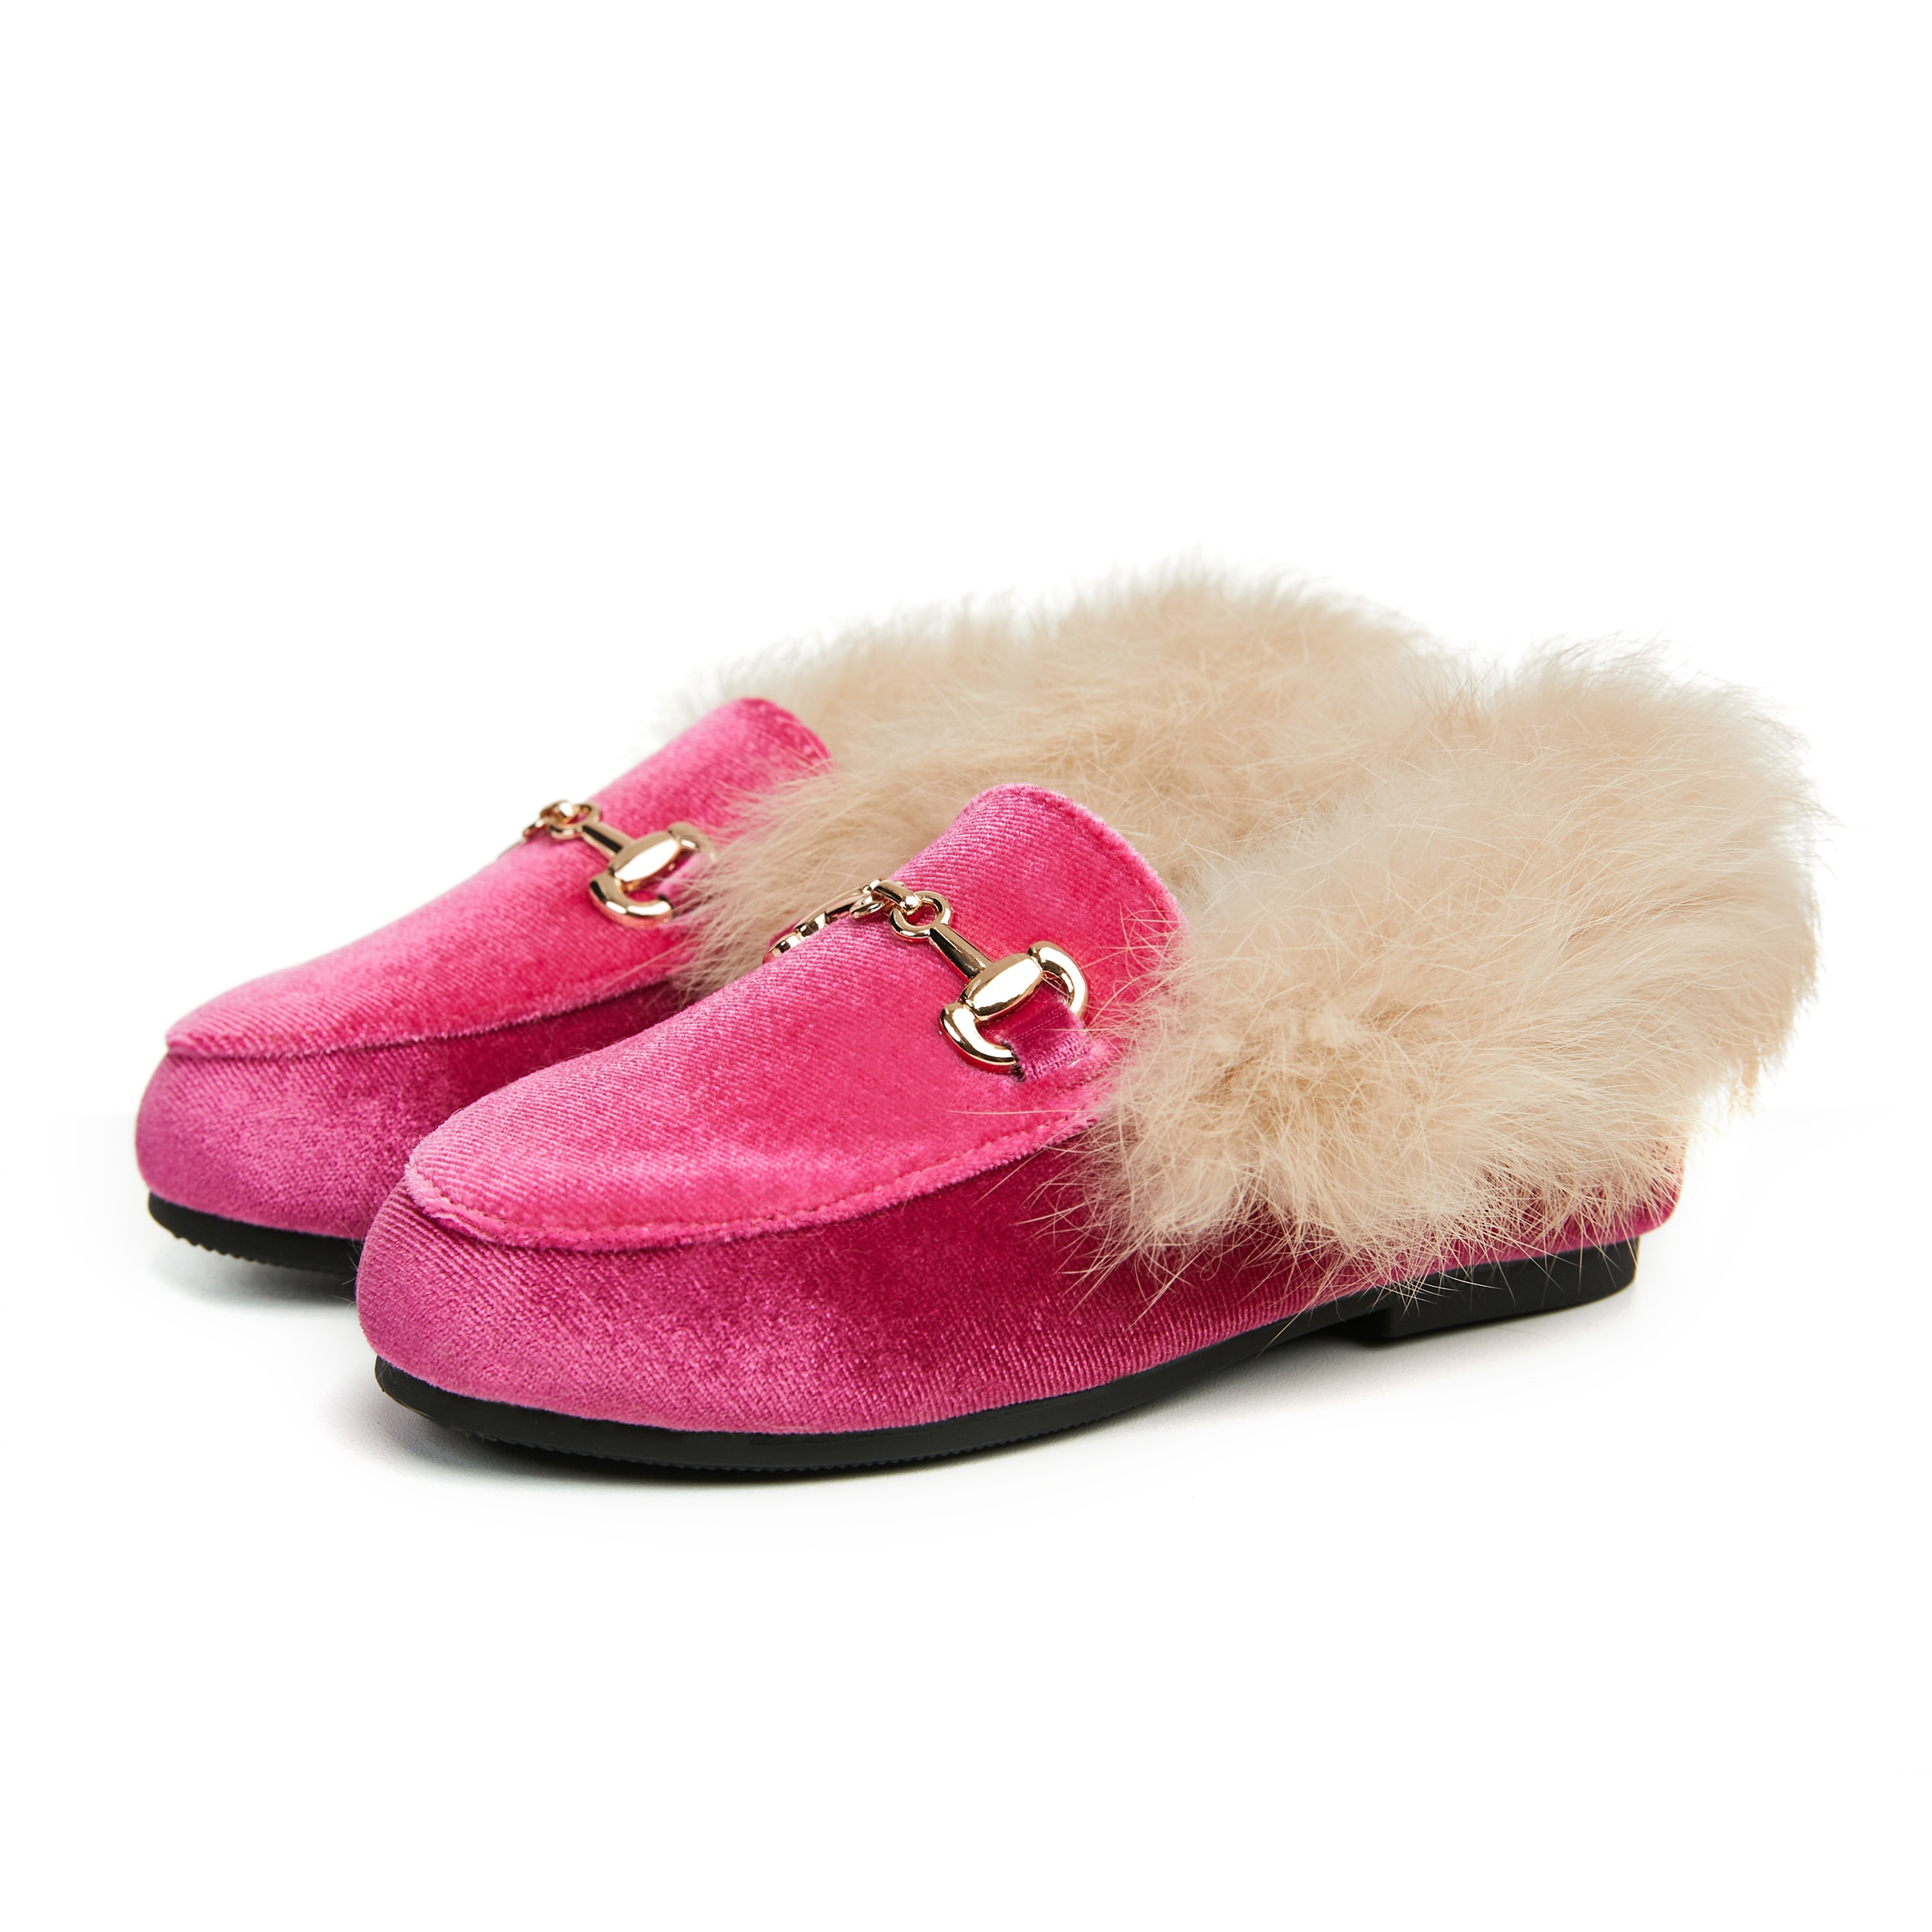 New Winter Kids Fur Shoes Children Leather Shoes Baby Girls Warm Flats Toddler Black Brand Shoes Pri